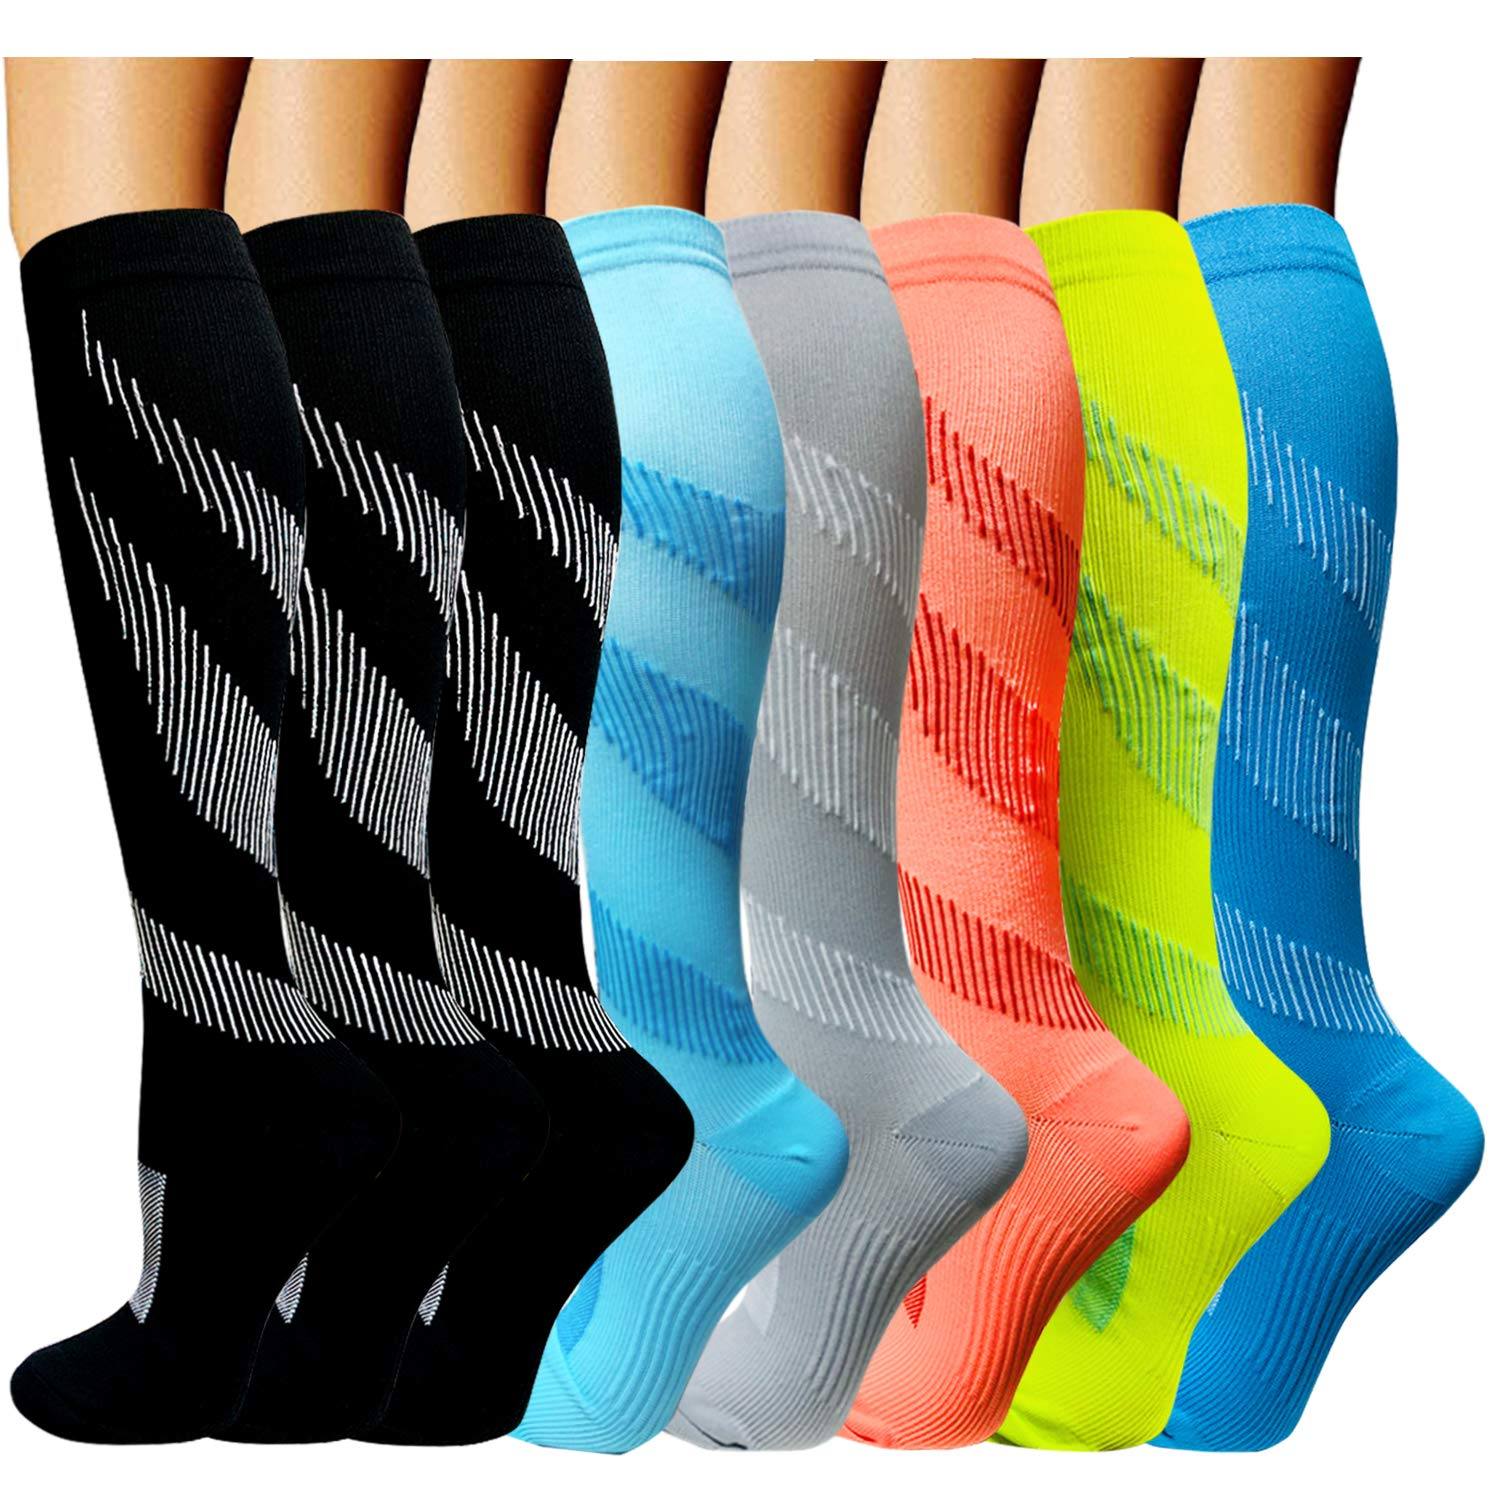 ACTINPUT Compression Socks Women & Men 15-20mmHg - Best Medical,Nursing,Hiking,Travel & Flight Socks-Running & Fitness (Large/X-Large, Assorted 3-8 Pack) by ACTINPUT